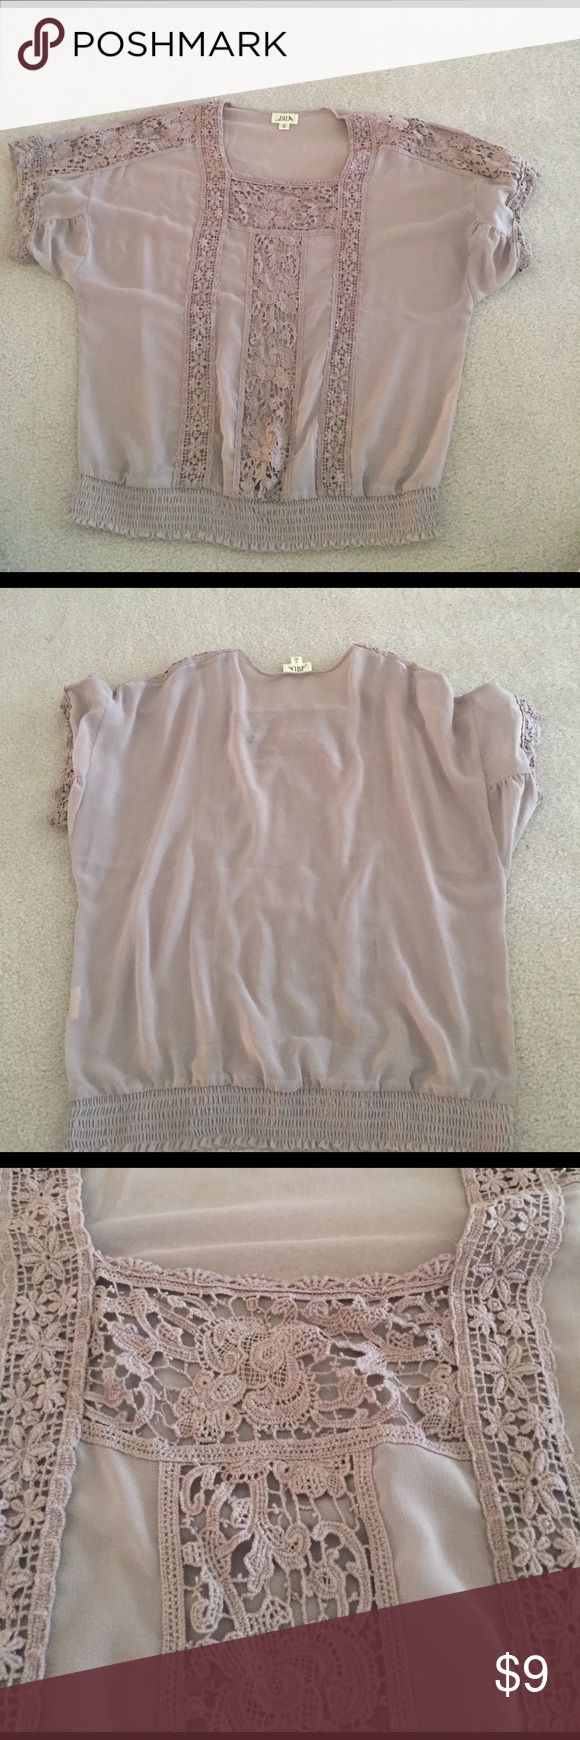 Light purple top This oversized peasants top is super flattering! With the smocked him at the bottom your waist can still be seen while also reaping the benefits of the oversized and breathable sleeves!! bila Tops Blouses